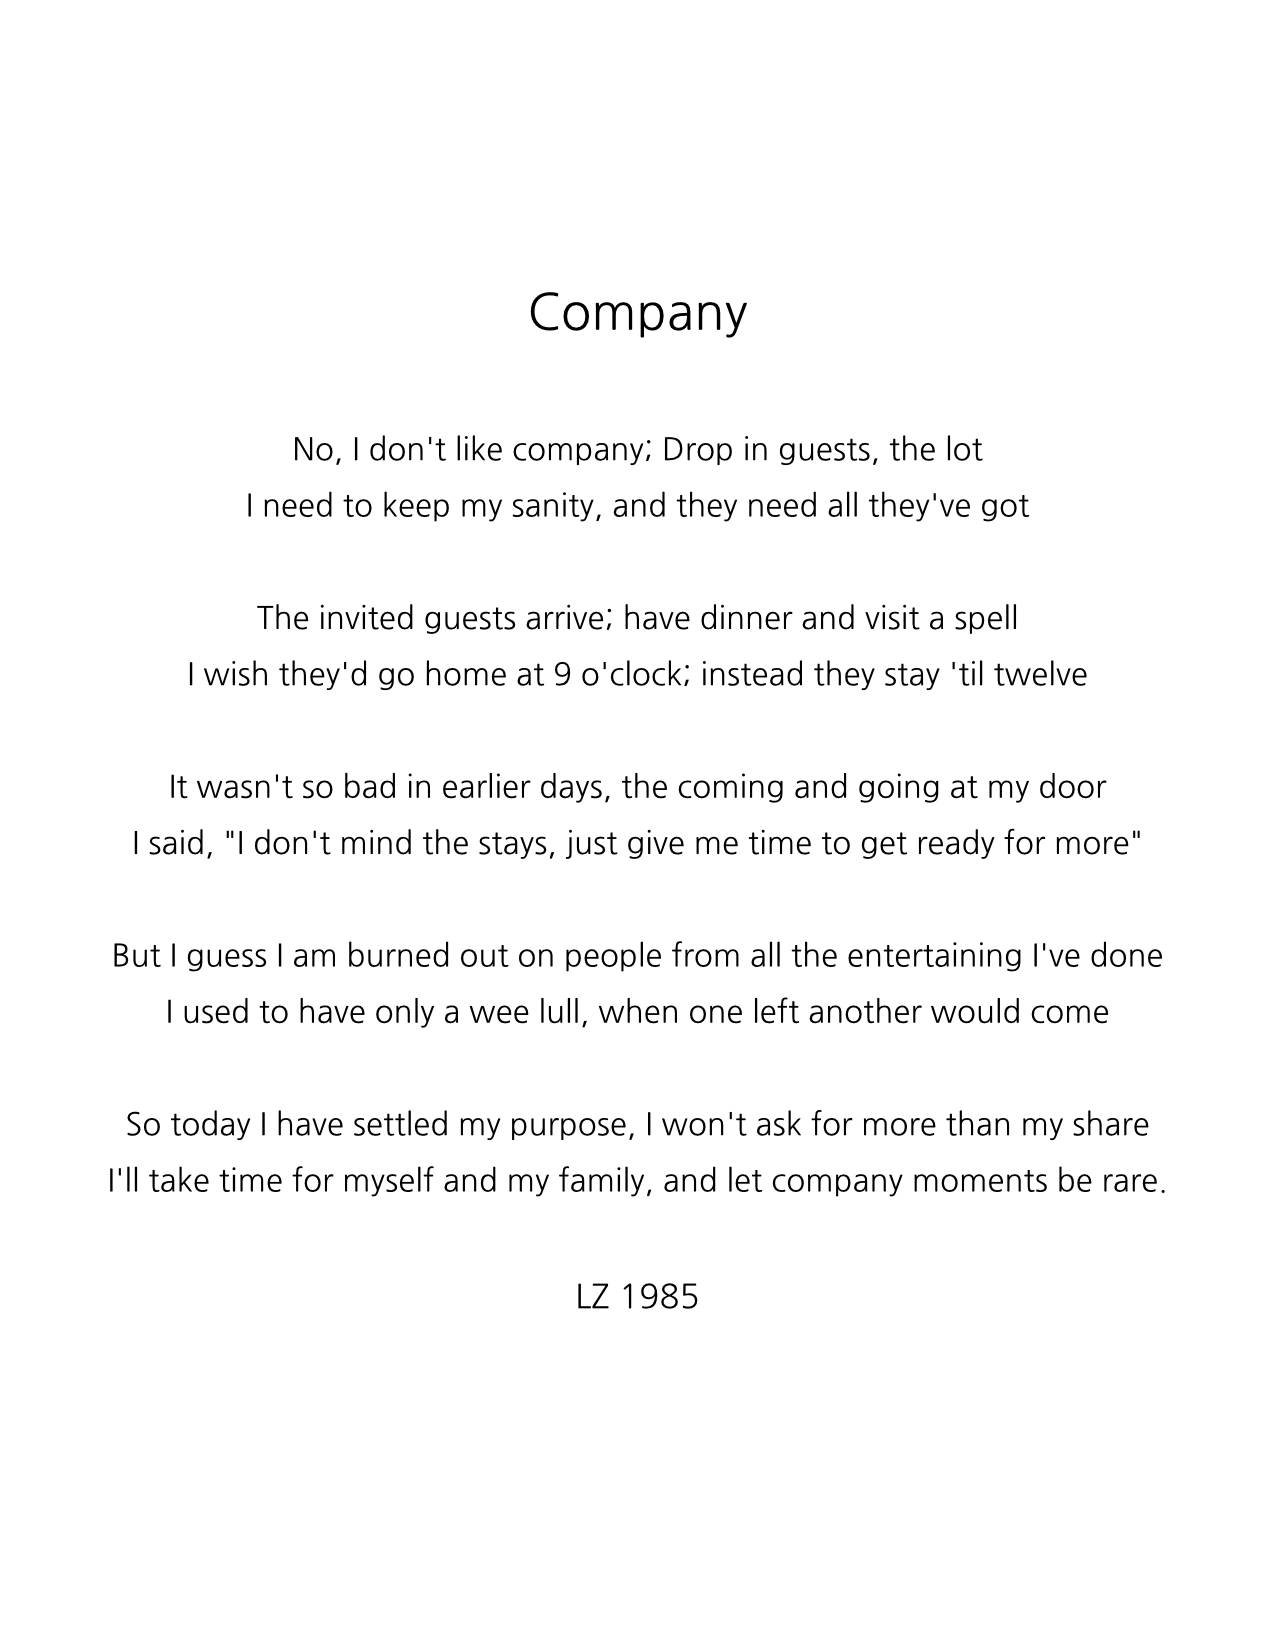 Company - A Poem by Rainie - 1985